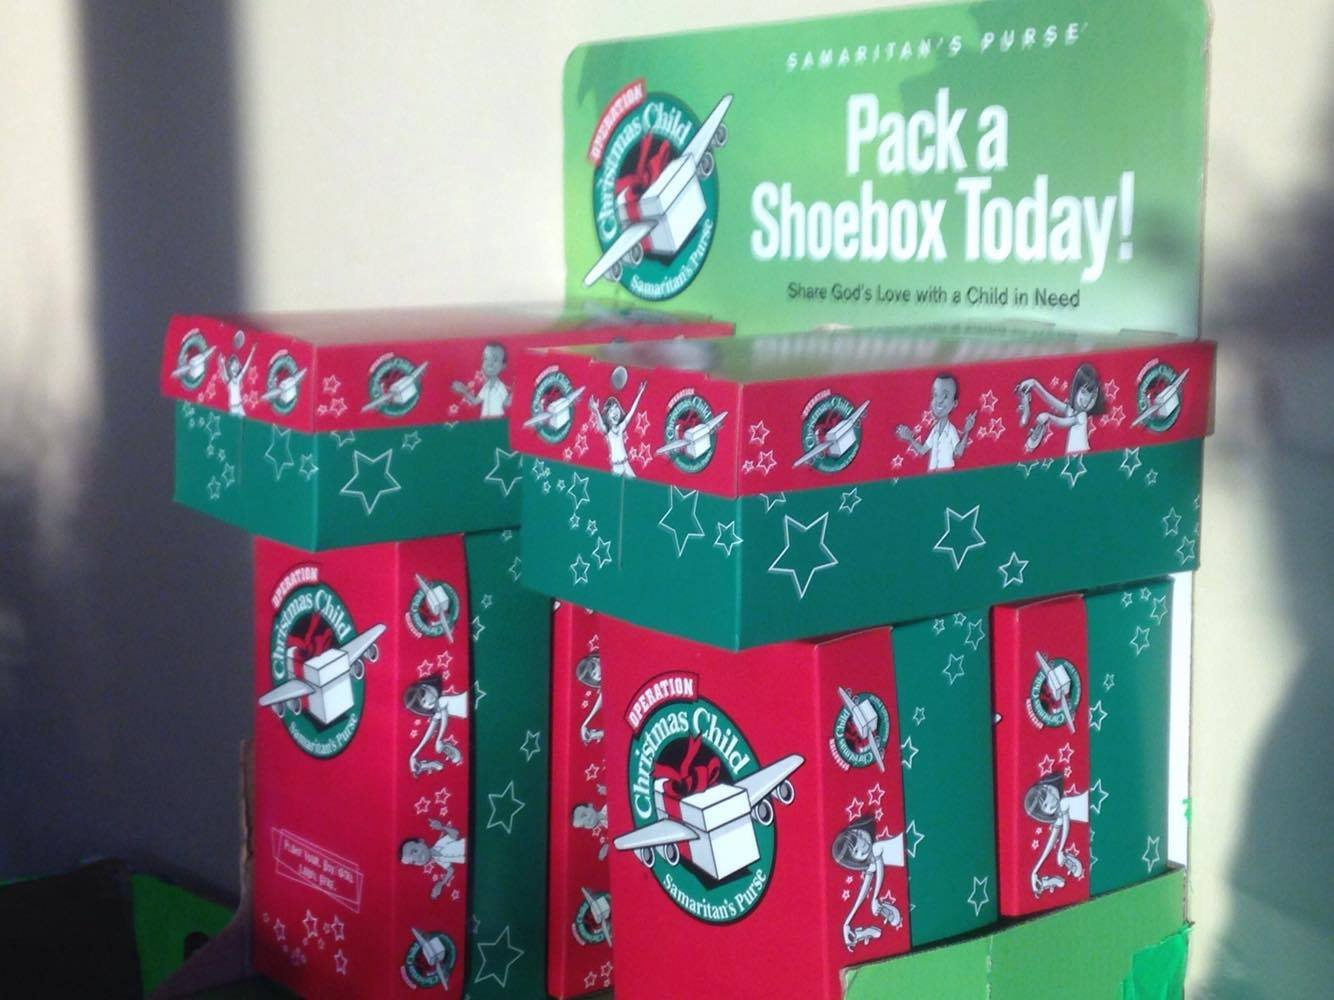 Churches collecting shoeboxes this week